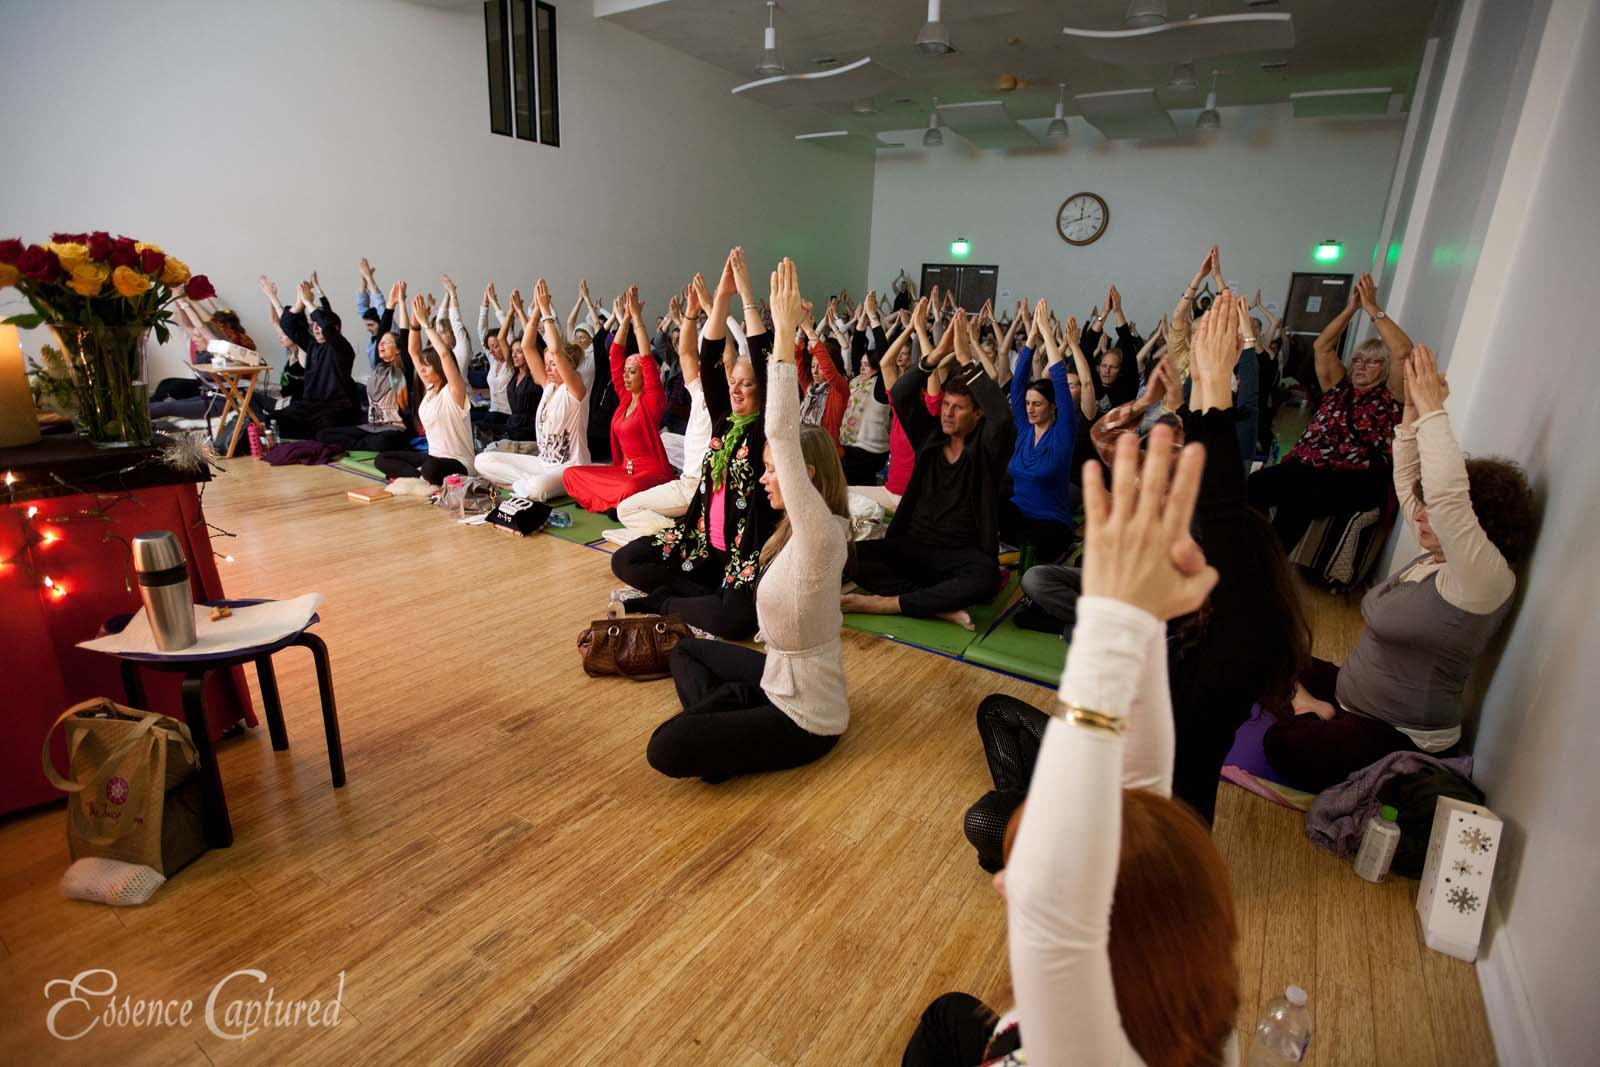 Naam Yoga L.A. New Years Eve event group yoga prayer shakti naam prayer hands high over head